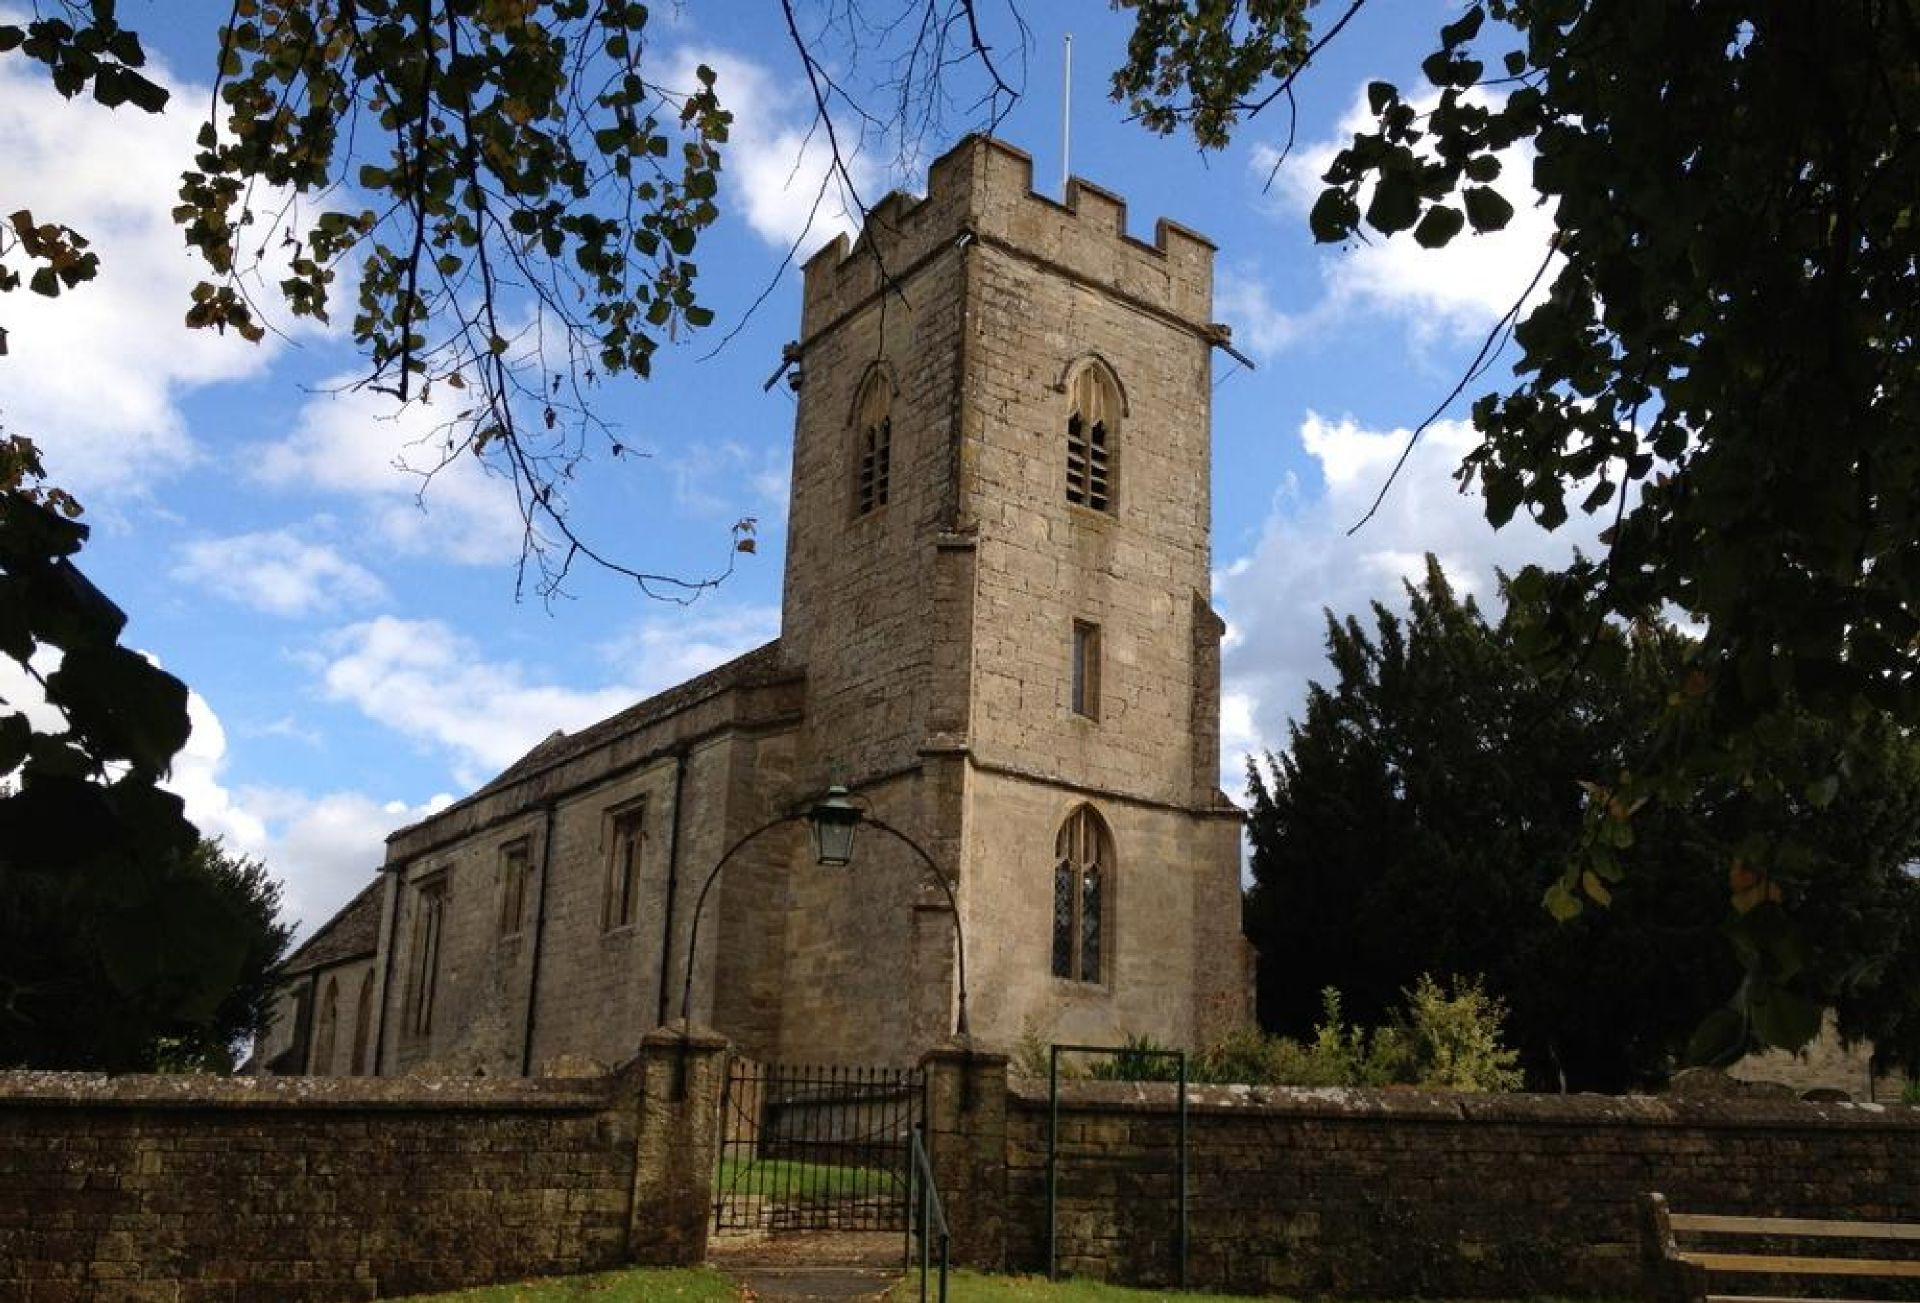 St Peters Church in Windrush